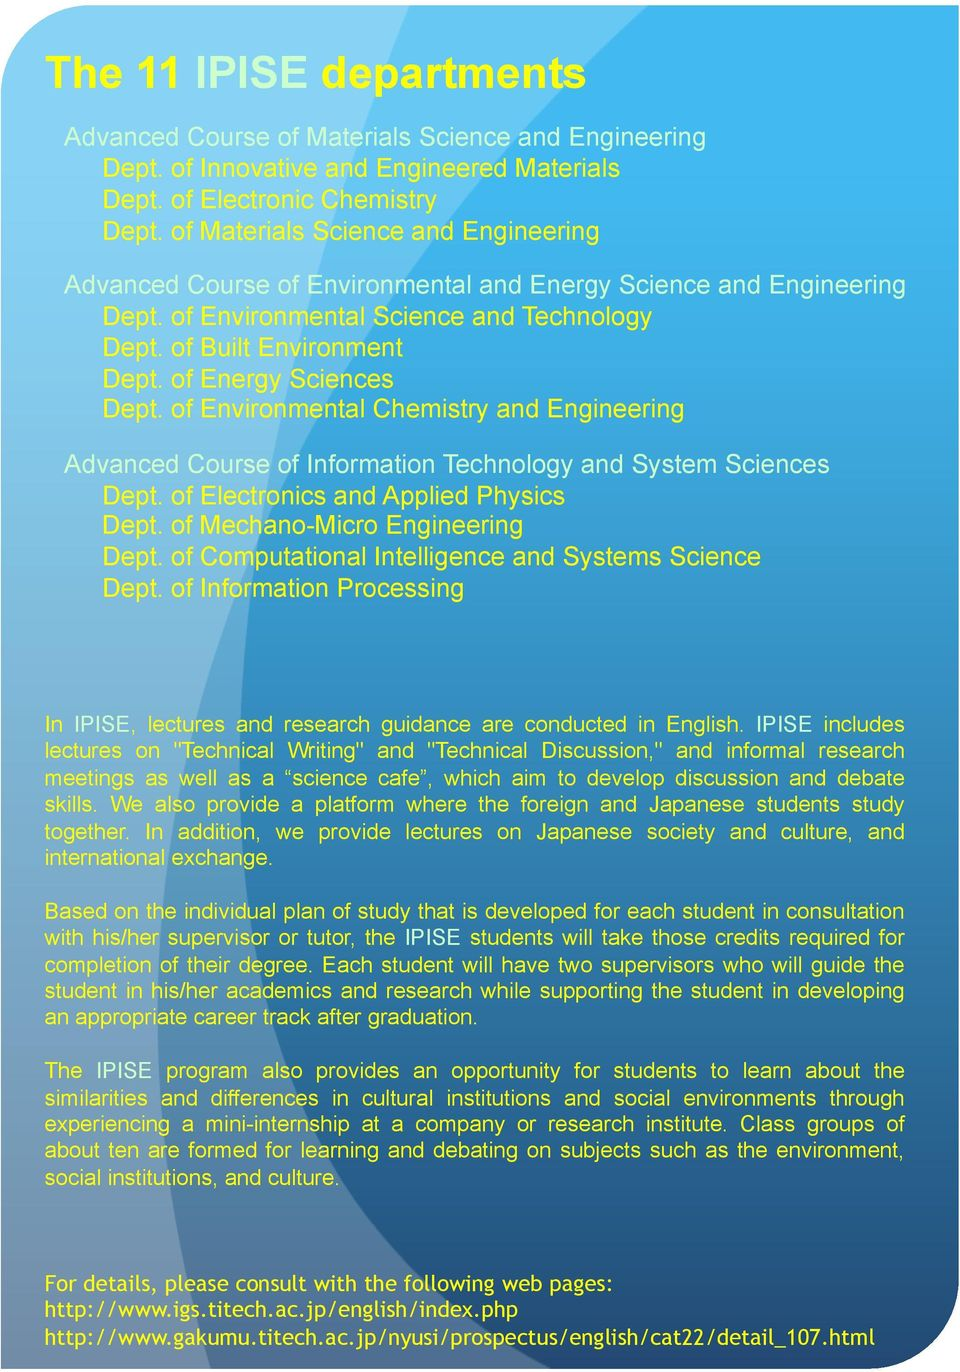 of Energy Sciences Dept. of Environmental Chemistry and Engineering Advanced Course of Information Technology and System Sciences Dept. of Electronics and Applied Physics Dept.